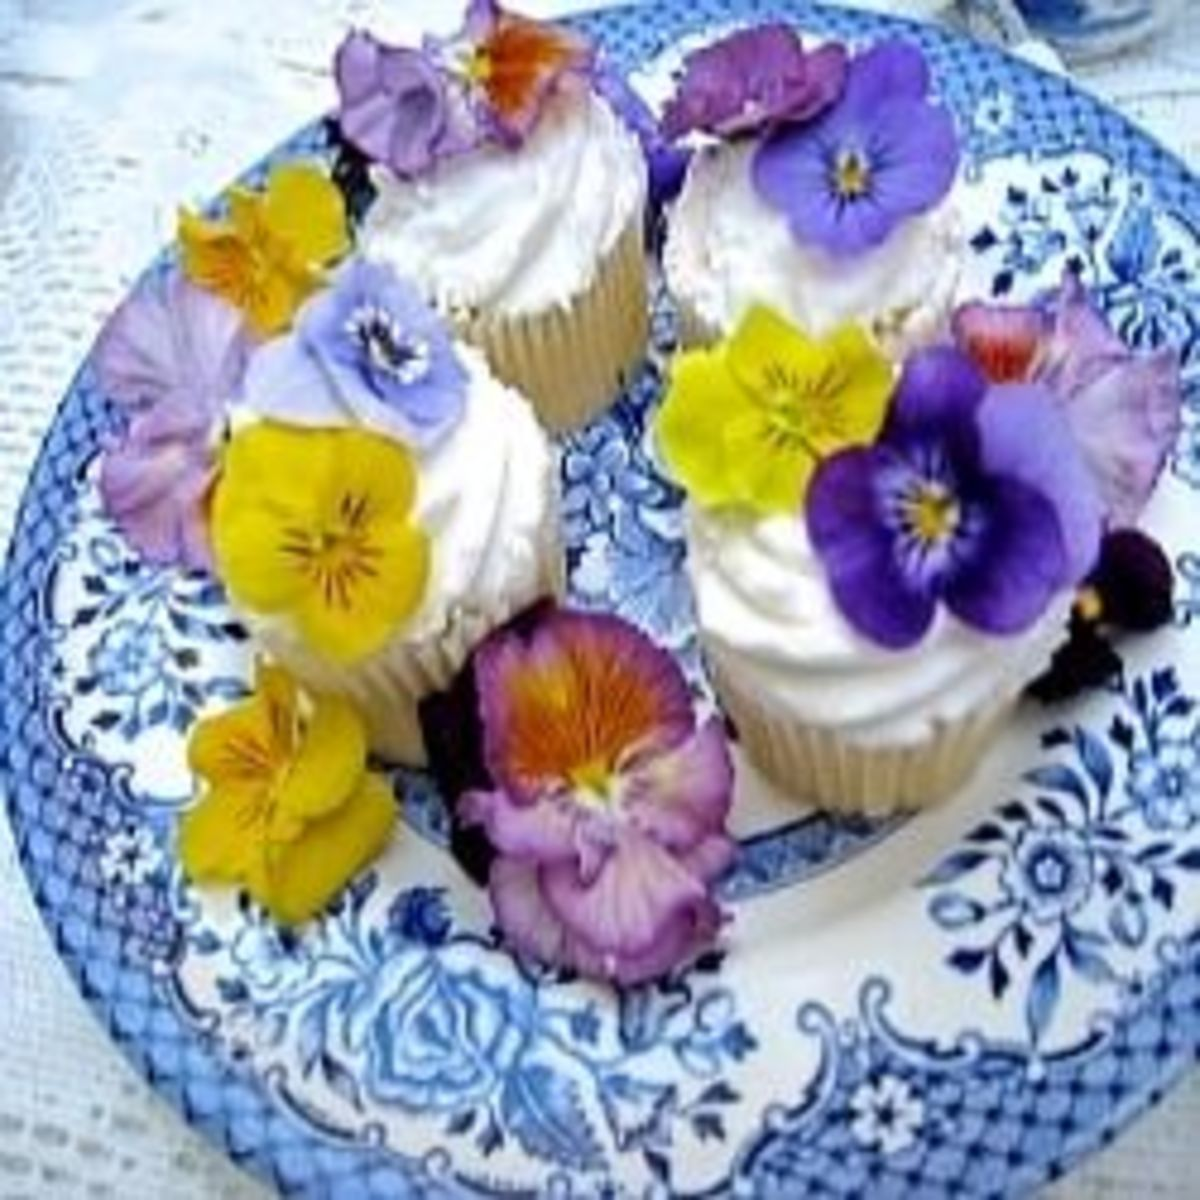 Cupcake Garnished with Pansies